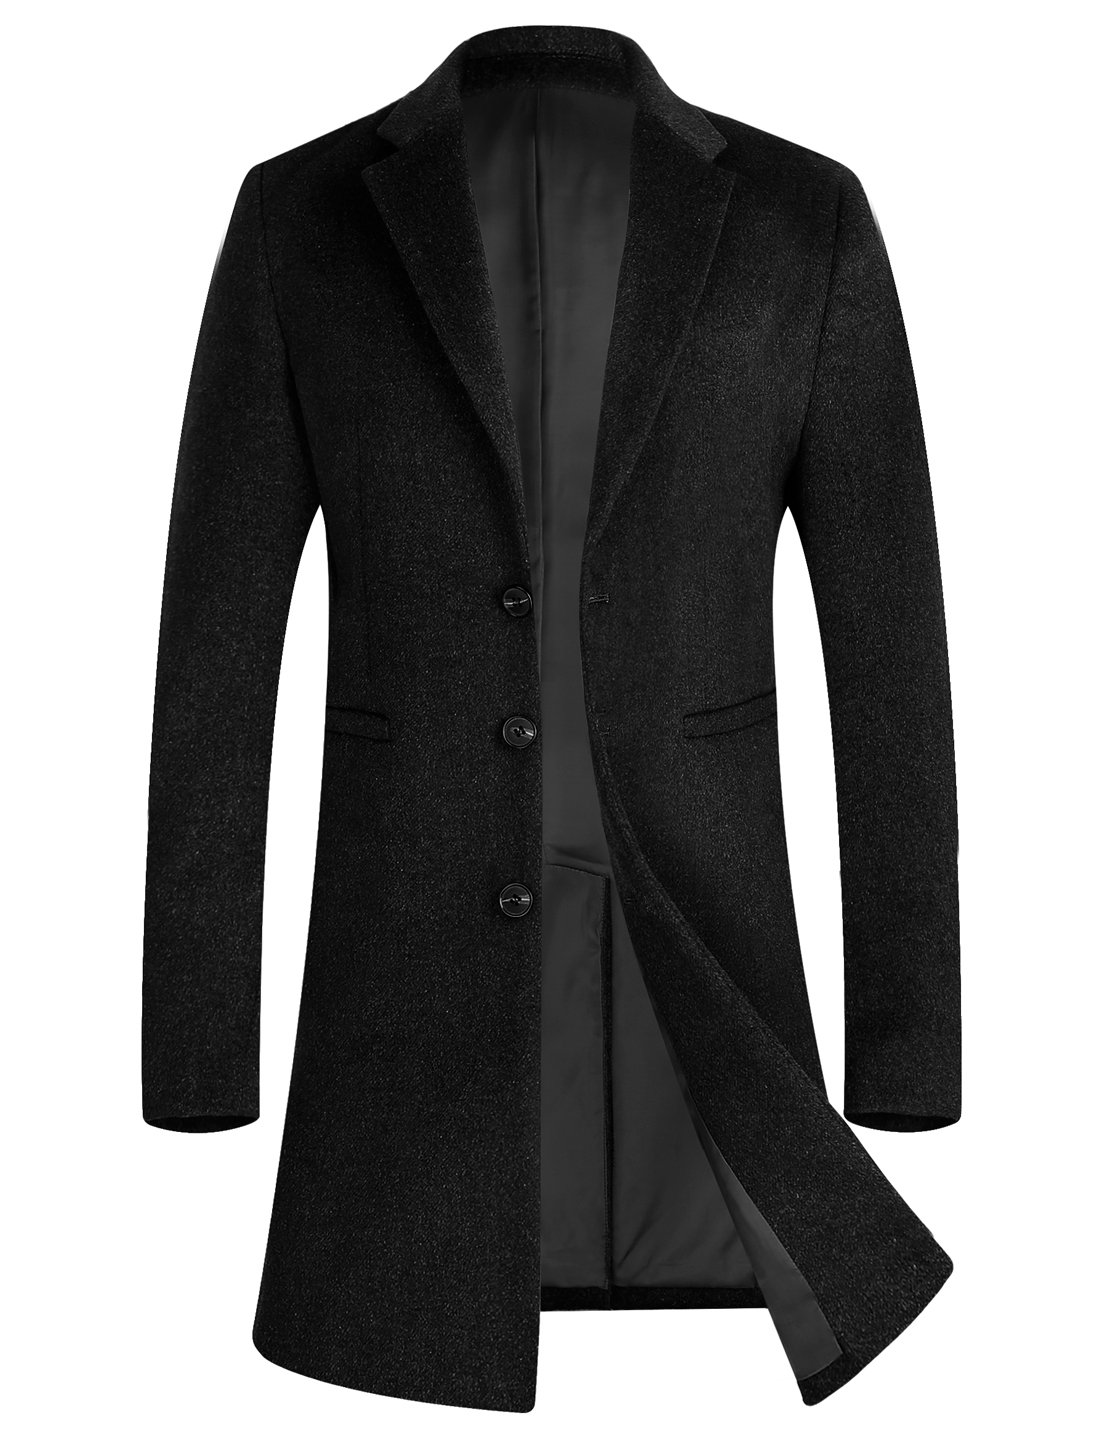 APTRO Men's Wool Coat Long Fashion Slim Fit Woolen Overcoat